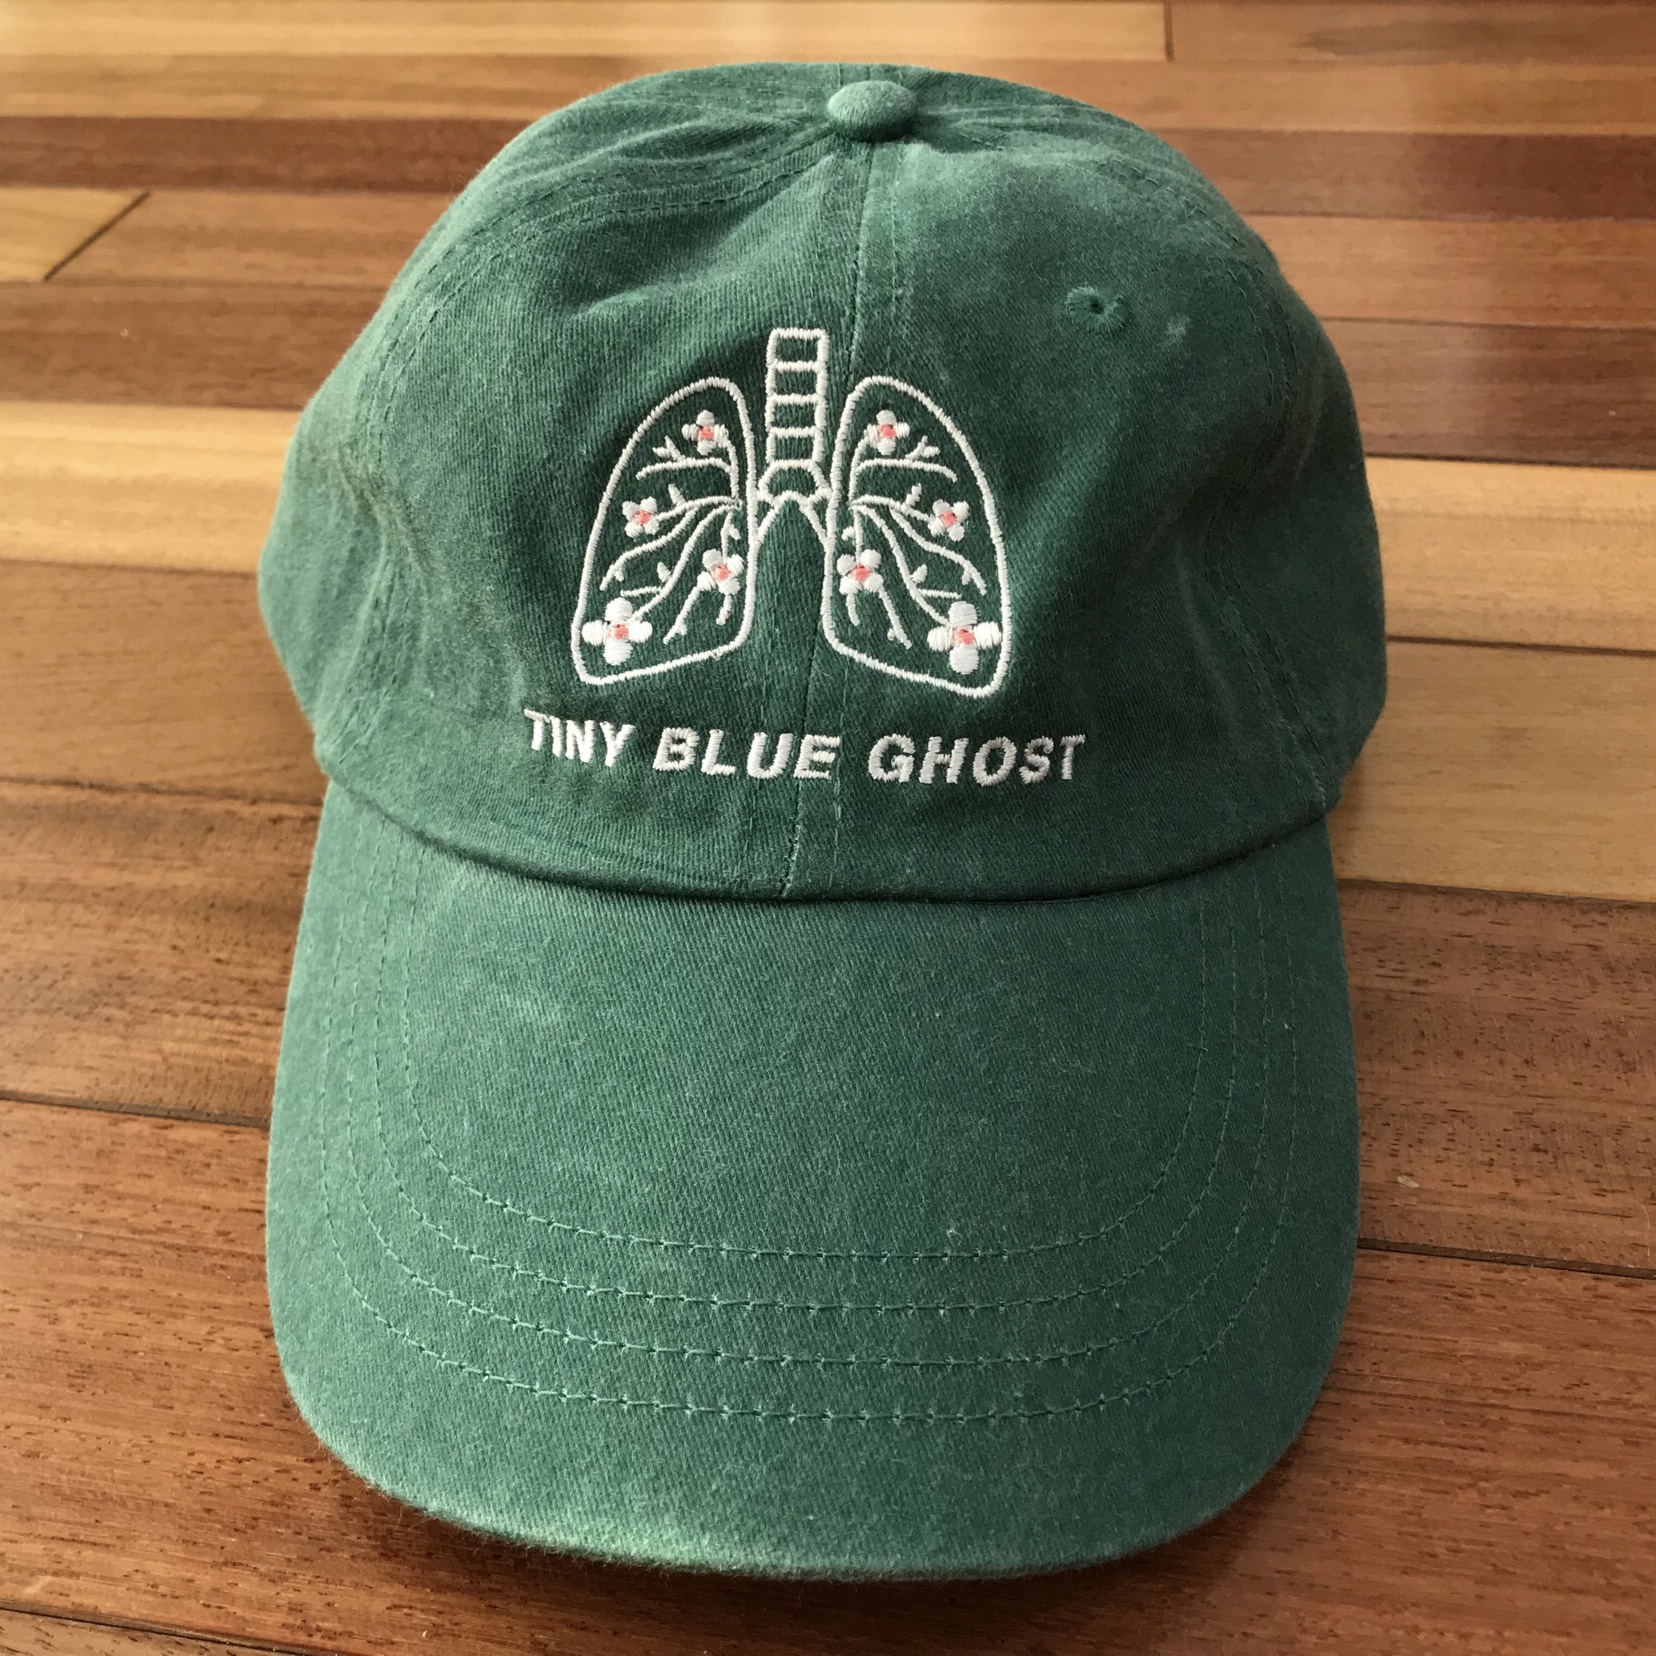 Tiny Blue Ghost - Hats / Enamel Pins / Prints